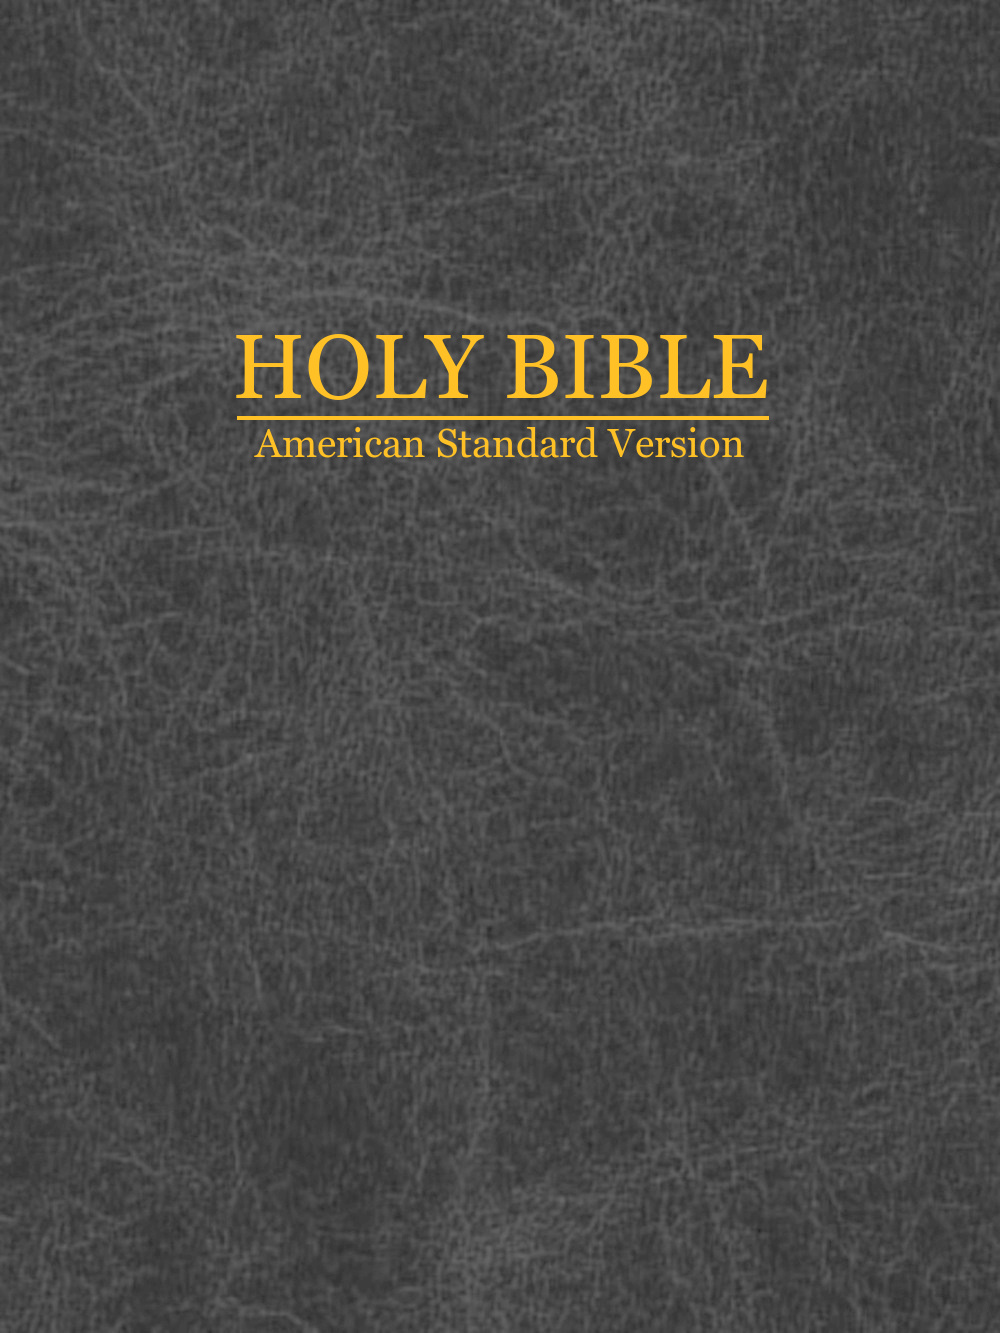 Bible Quotes Wallpaper Hd American Standard Version Of The Holy Bible 1901